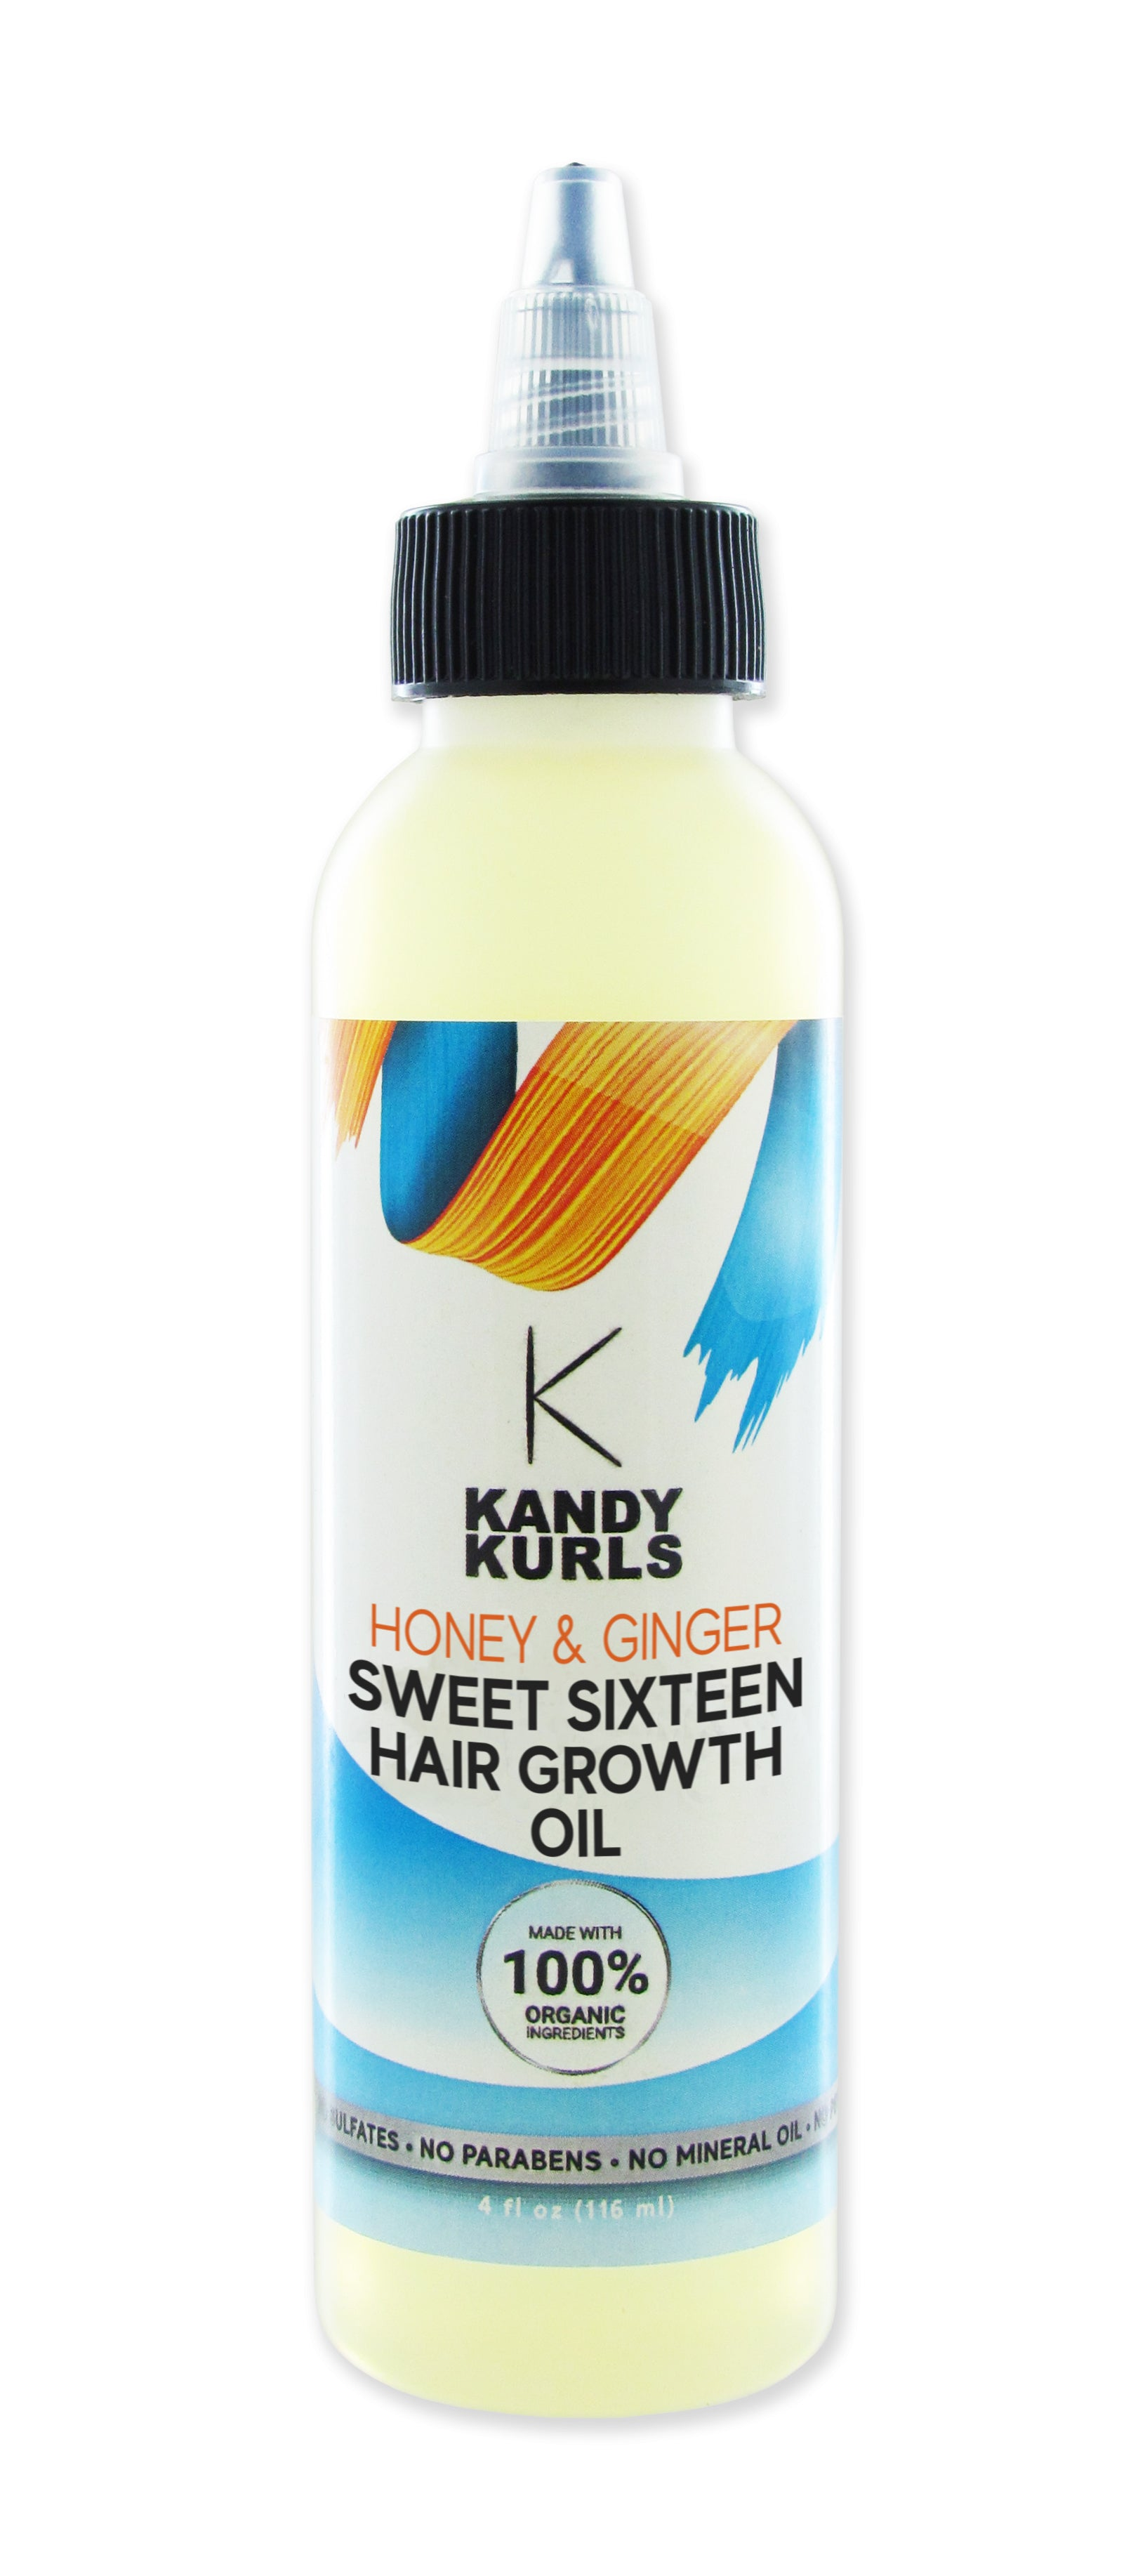 KANDY KURLS HONEY & GINGER SWEET SIXTEEN HAIR GROWTH OIL